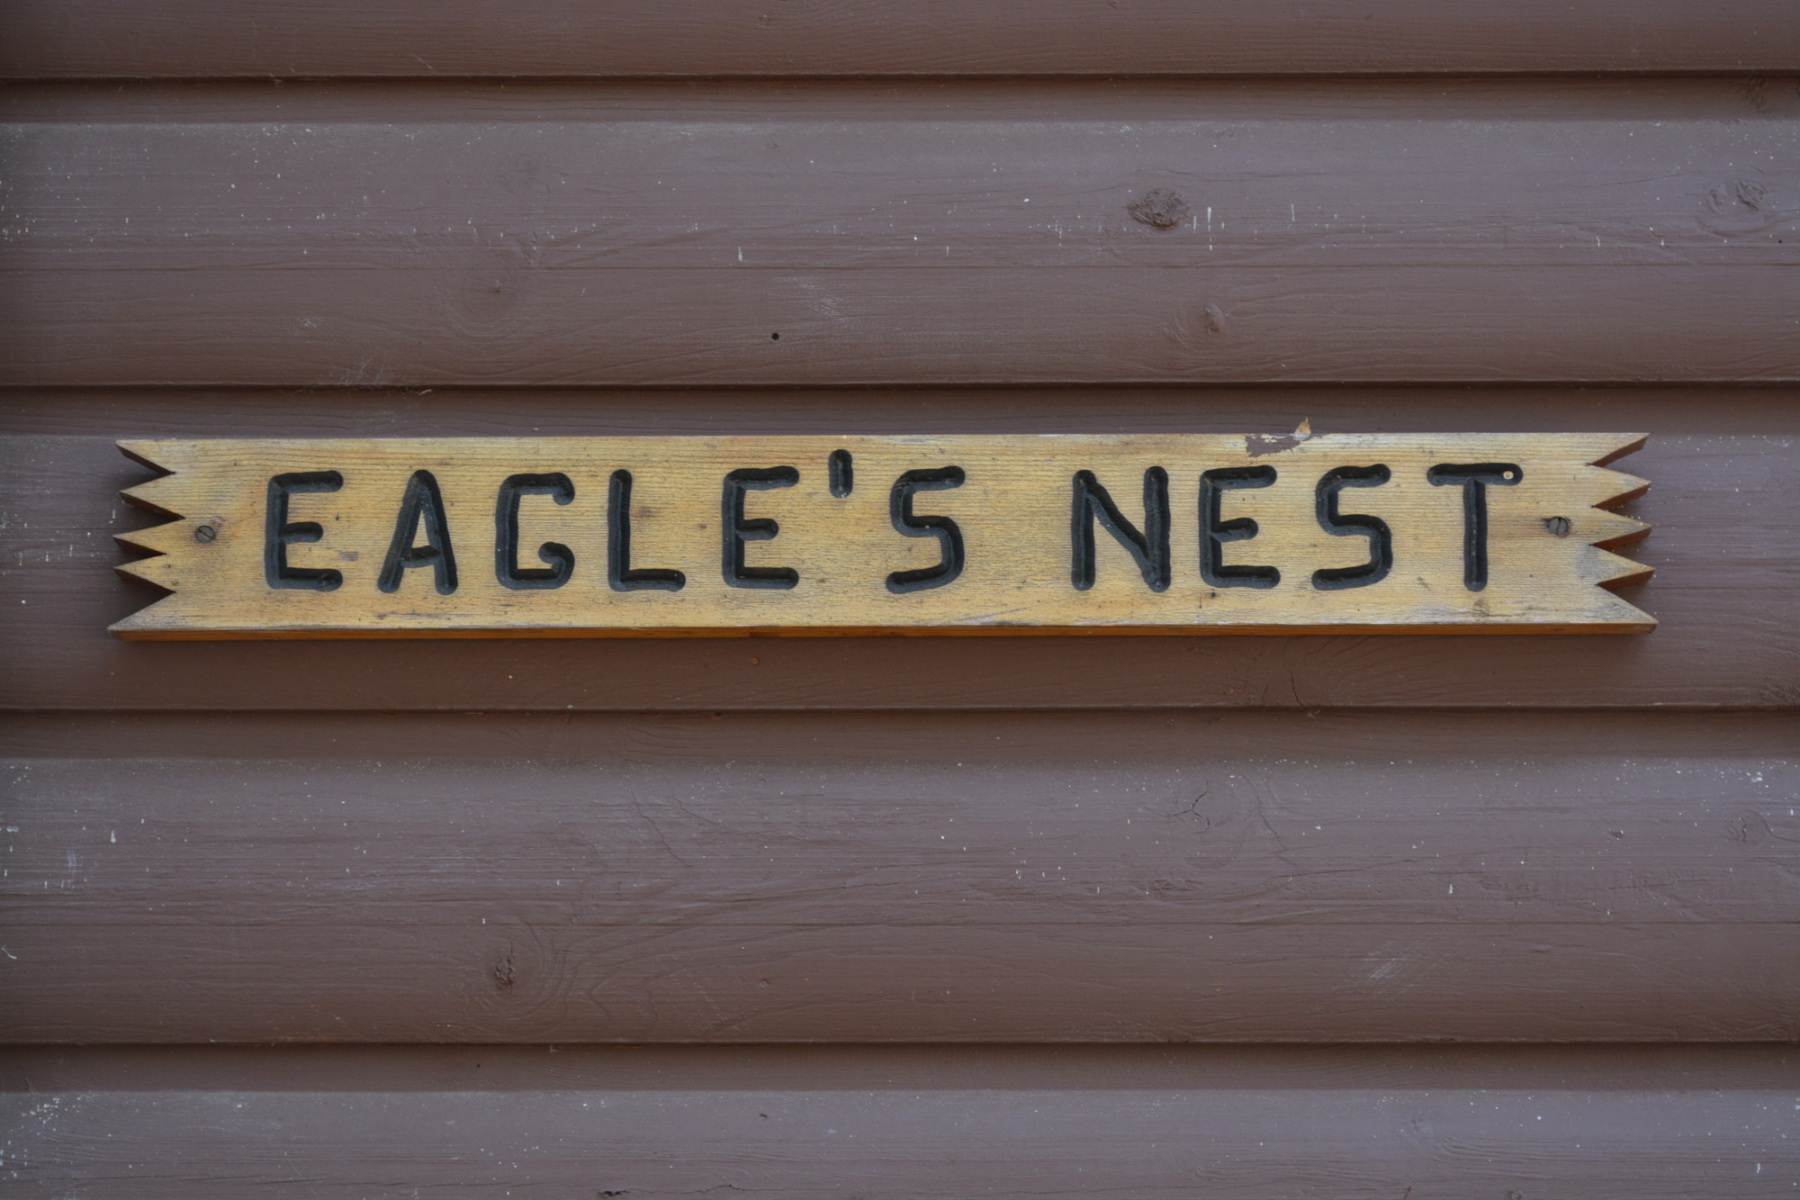 Eagles-Nest-Sign